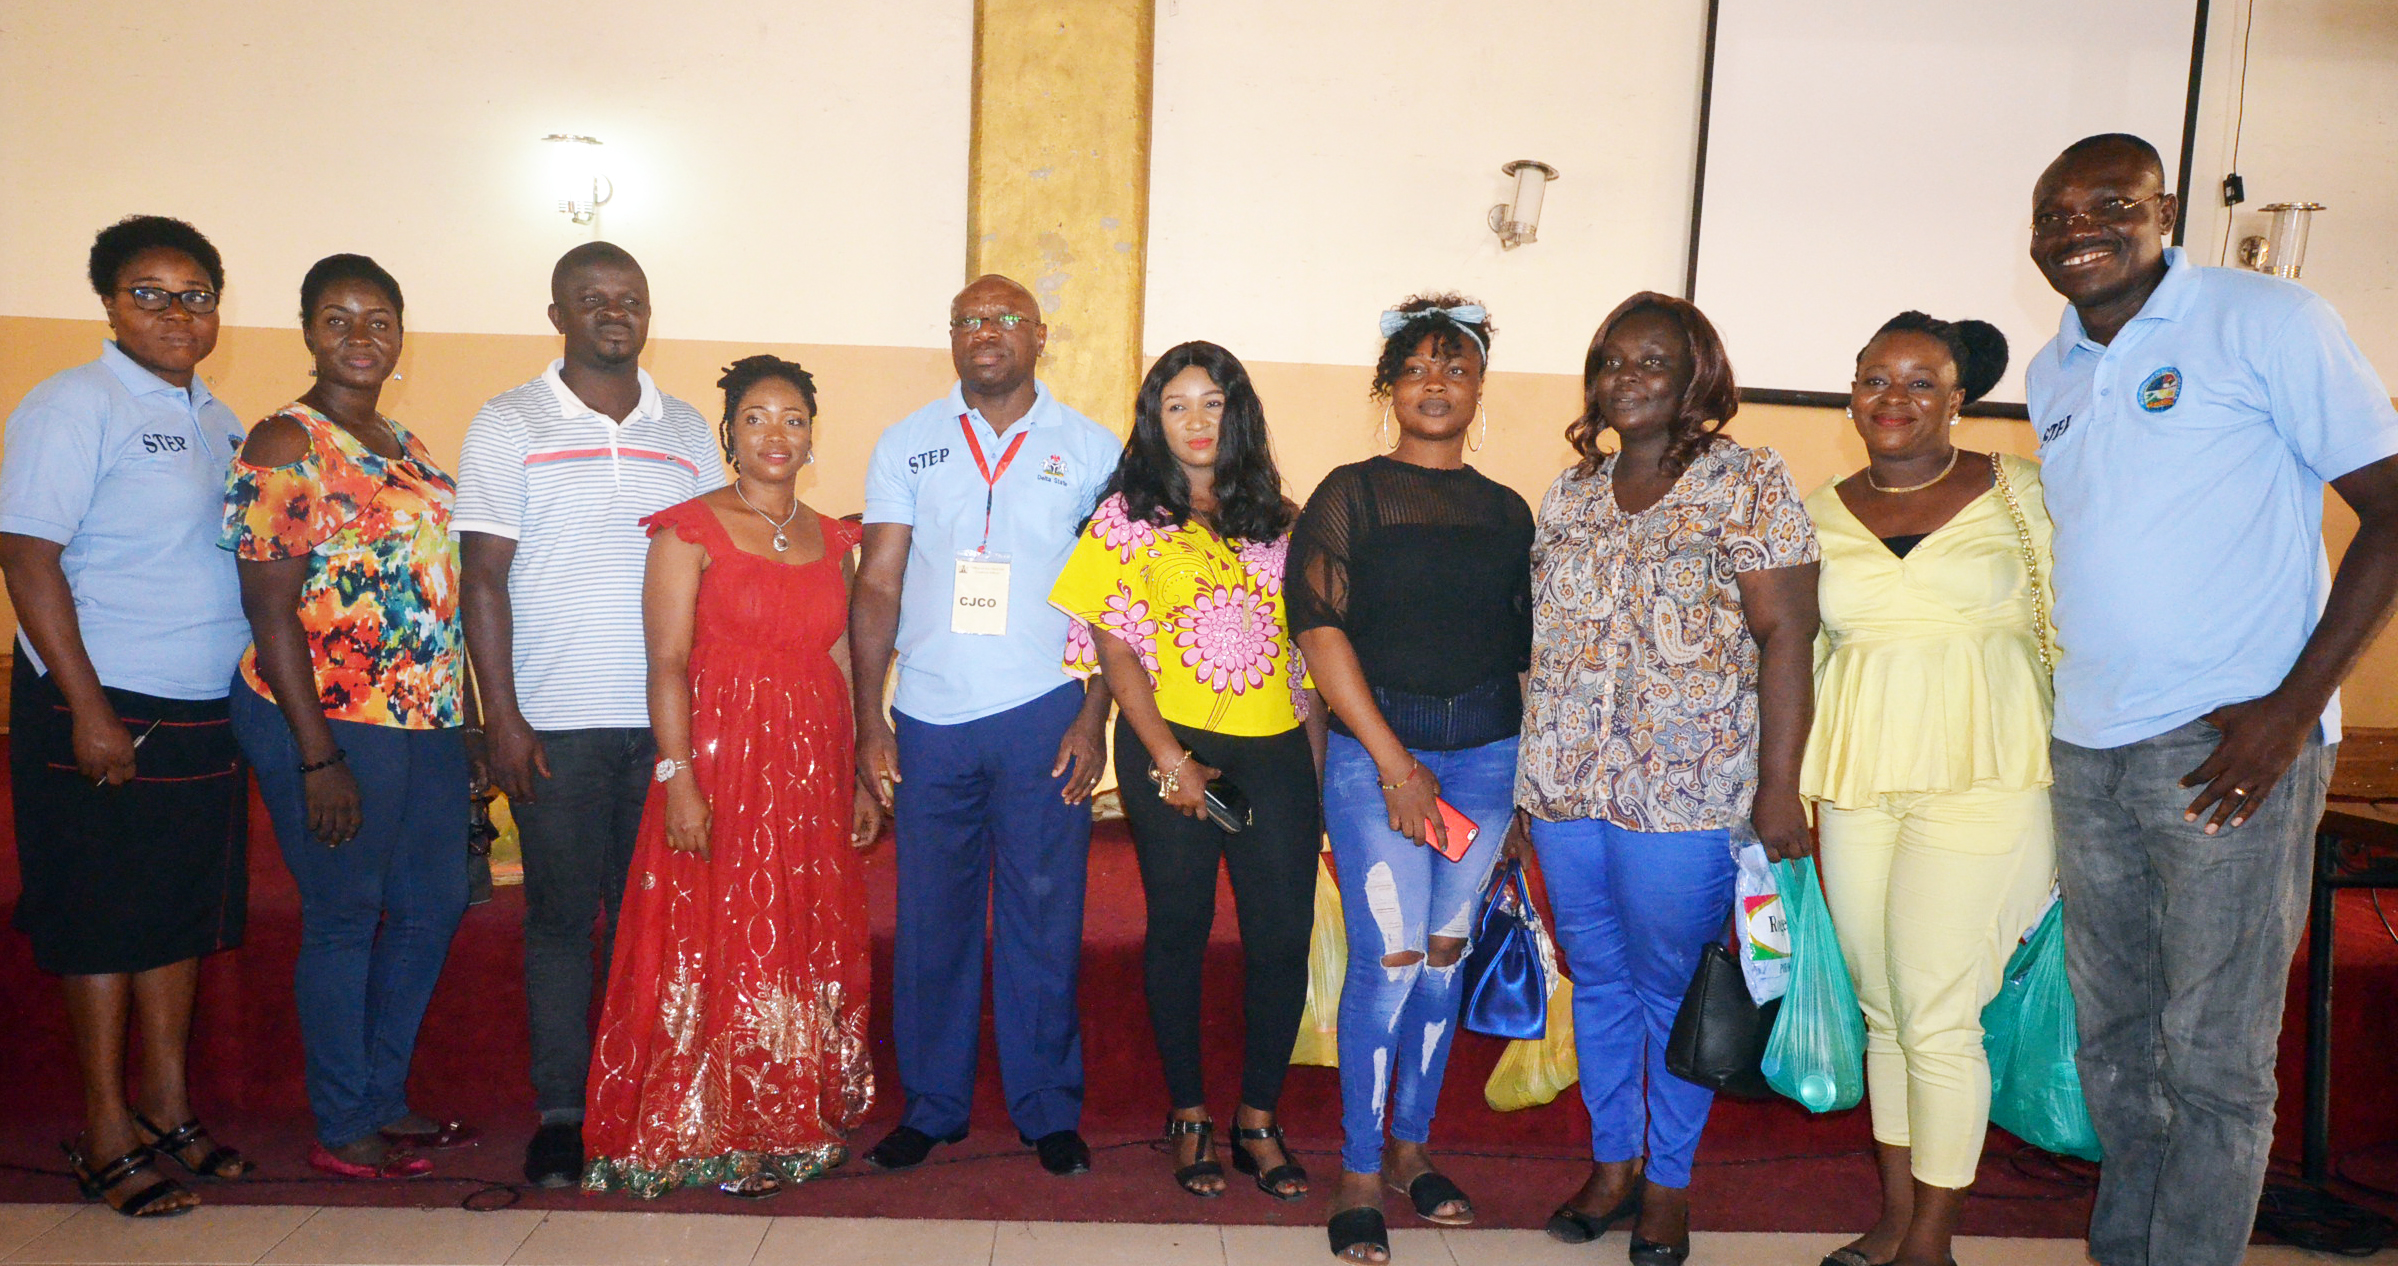 CJCO, Prof Eric Eboh, (M) flanked by STEPreneurs grown into trainers